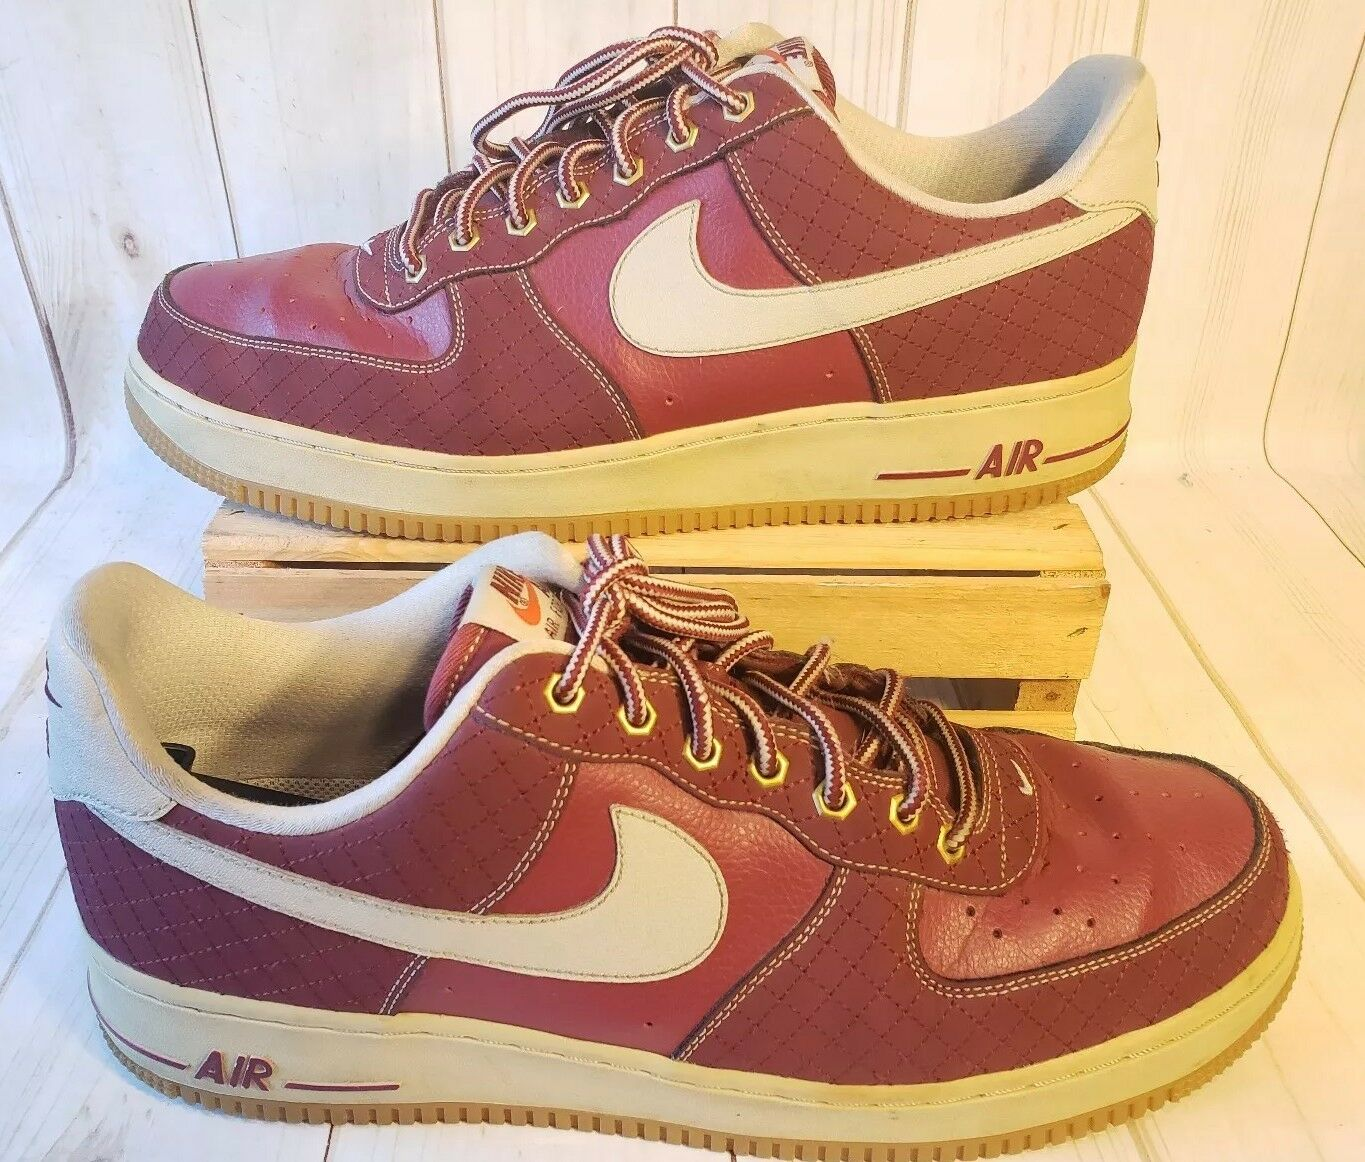 NIKE AIR FORCE 1 - TEAM RED LIGHT BROWN 488298-625